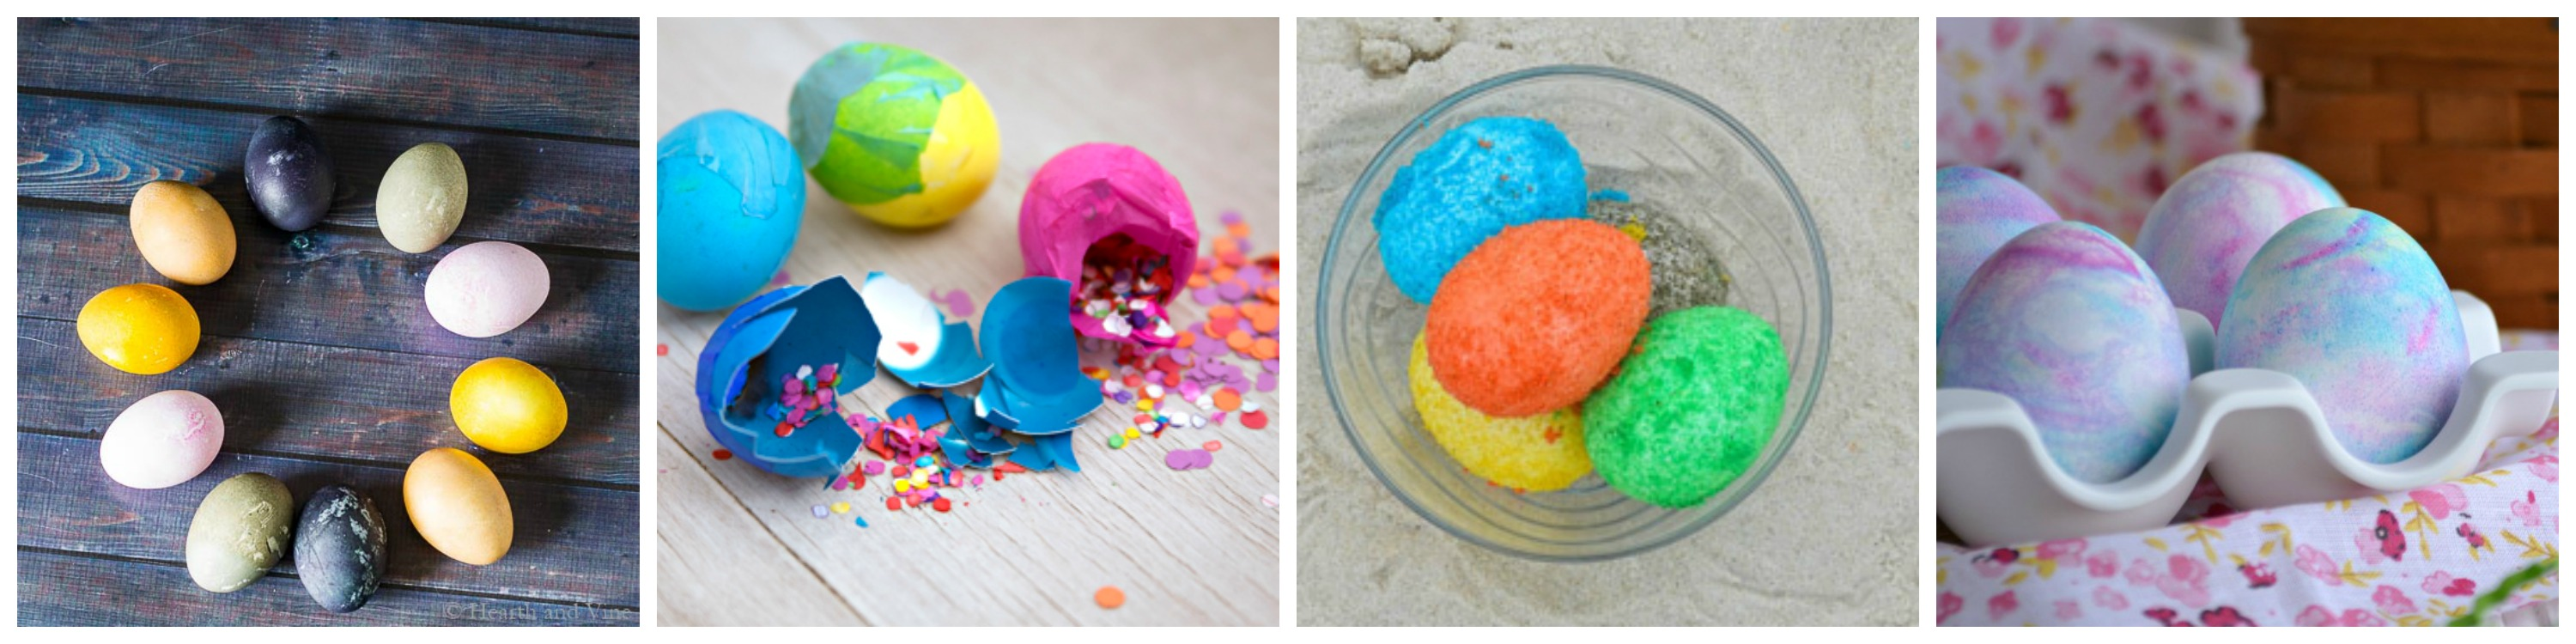 creative ways to dye easter eggs, creative ways to color easter eggs, fun easter eggs, how to dye easter eggs, use lace to dye easter eggs, use food coloring to dye easter eggs, natural ways to color easter eggs, natural ways to dye easter eggs